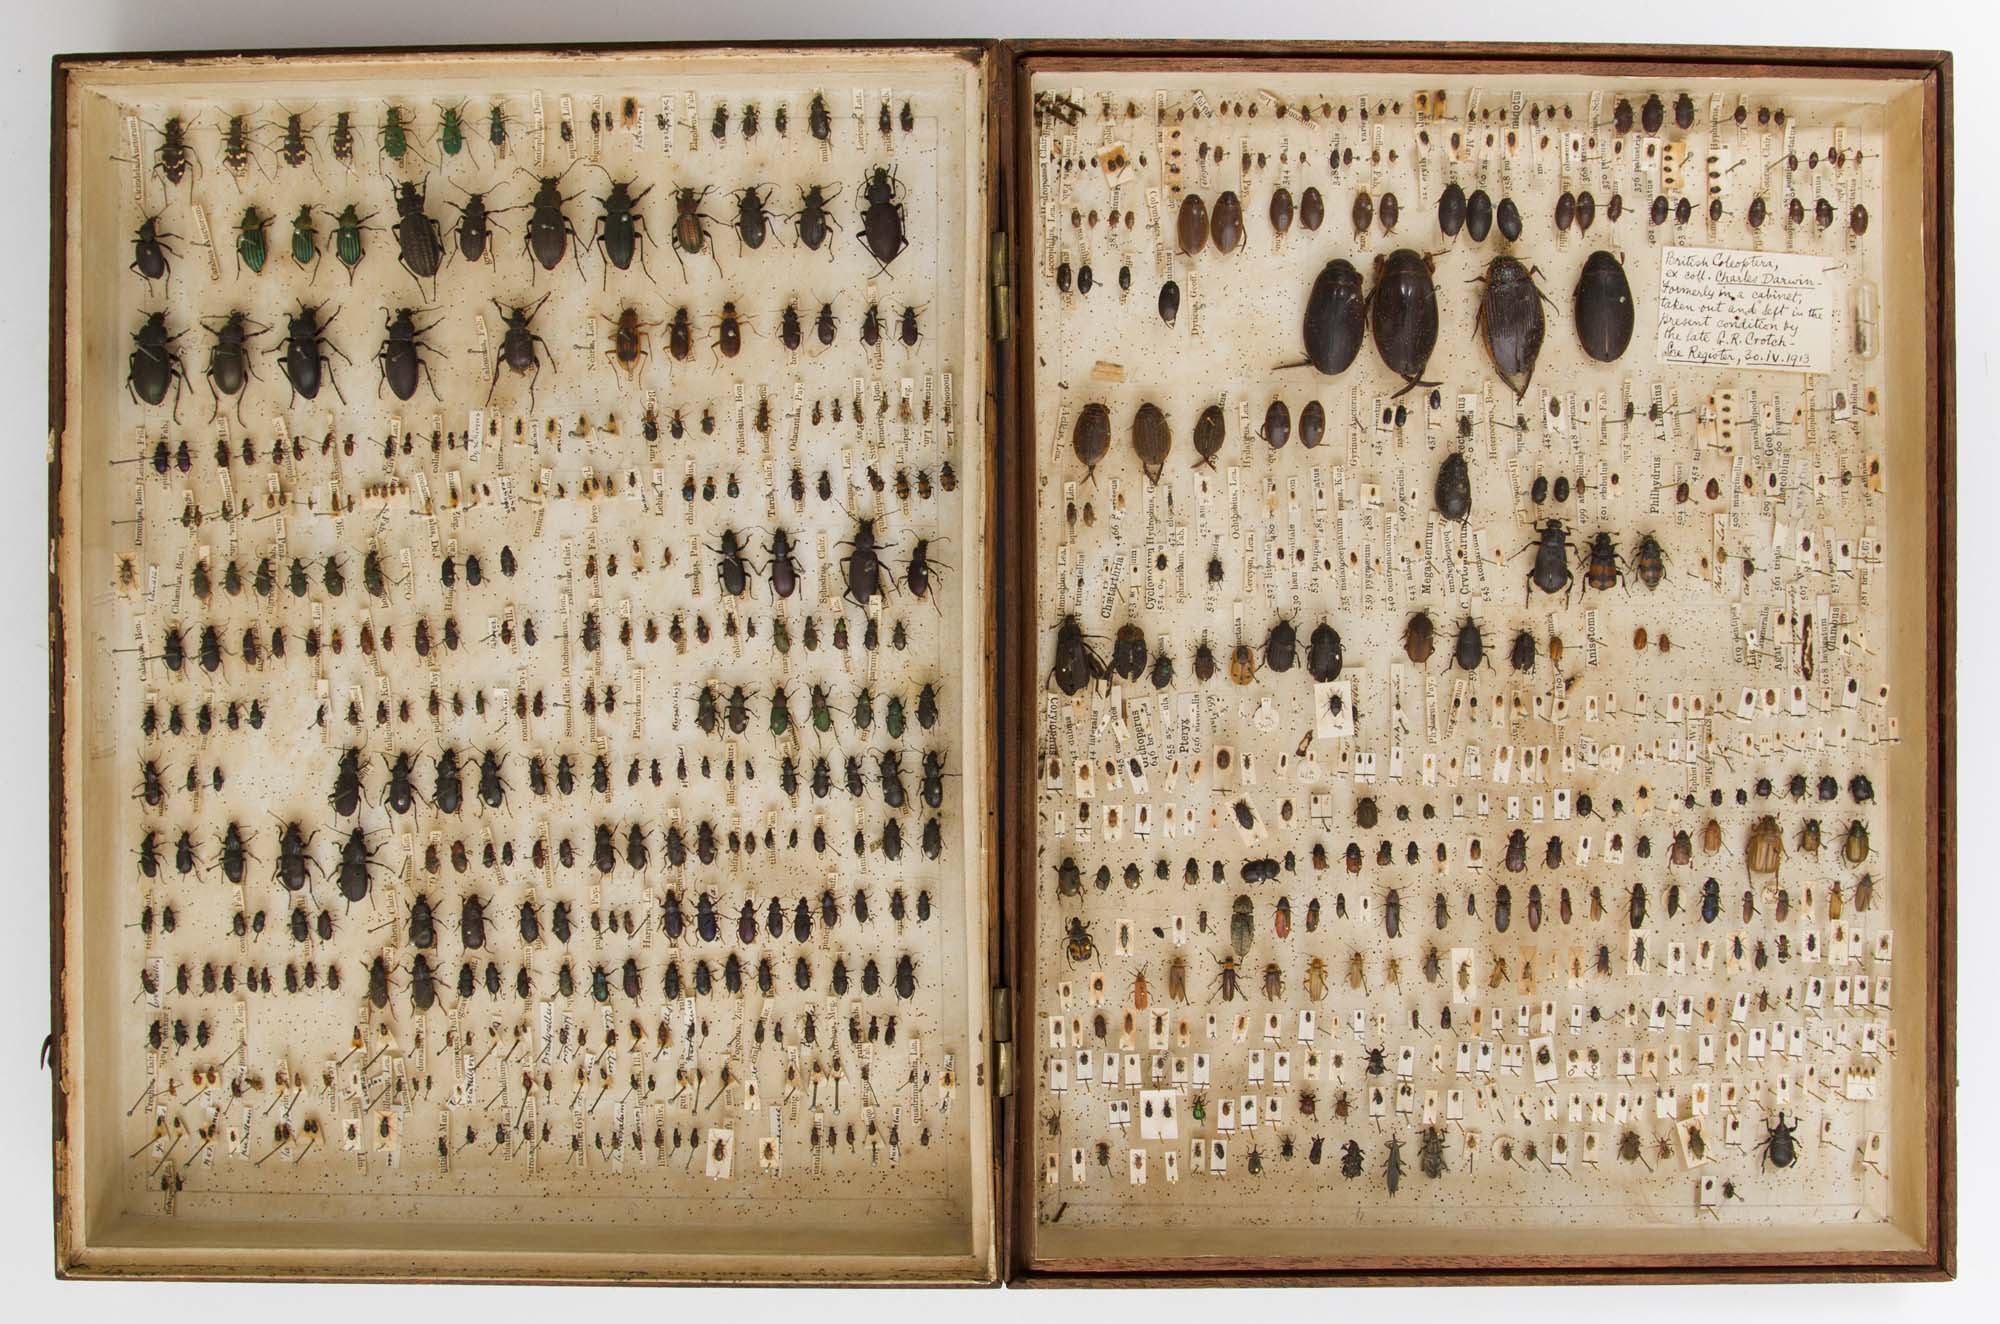 a photo showing a himged double sided display case filled with pinned beetle specimens